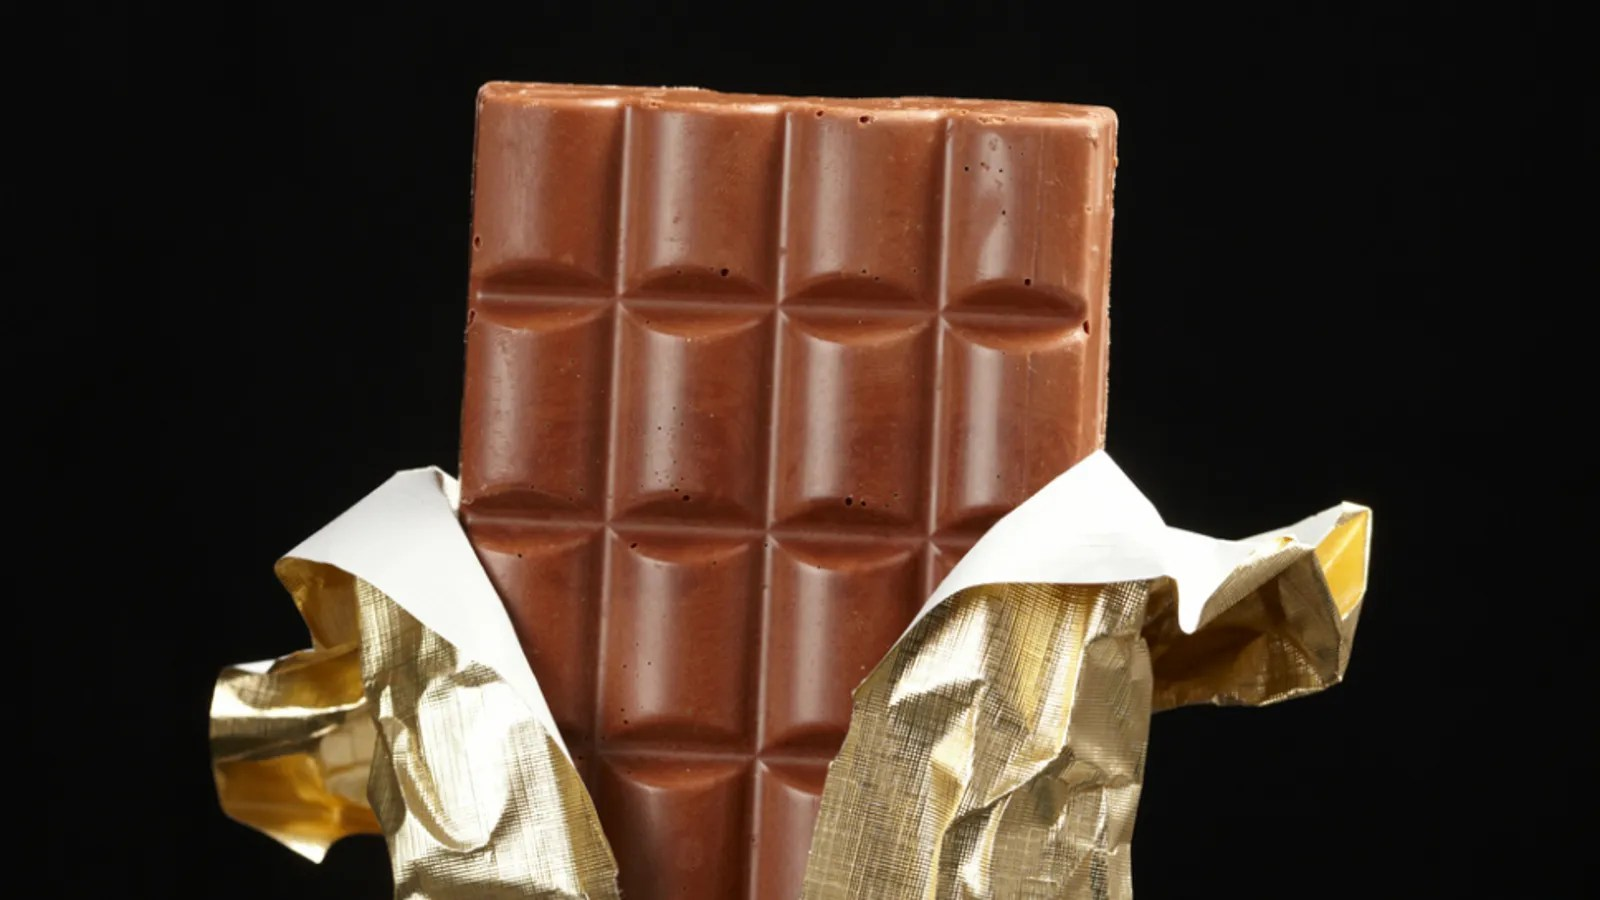 Candy Bars Ranked